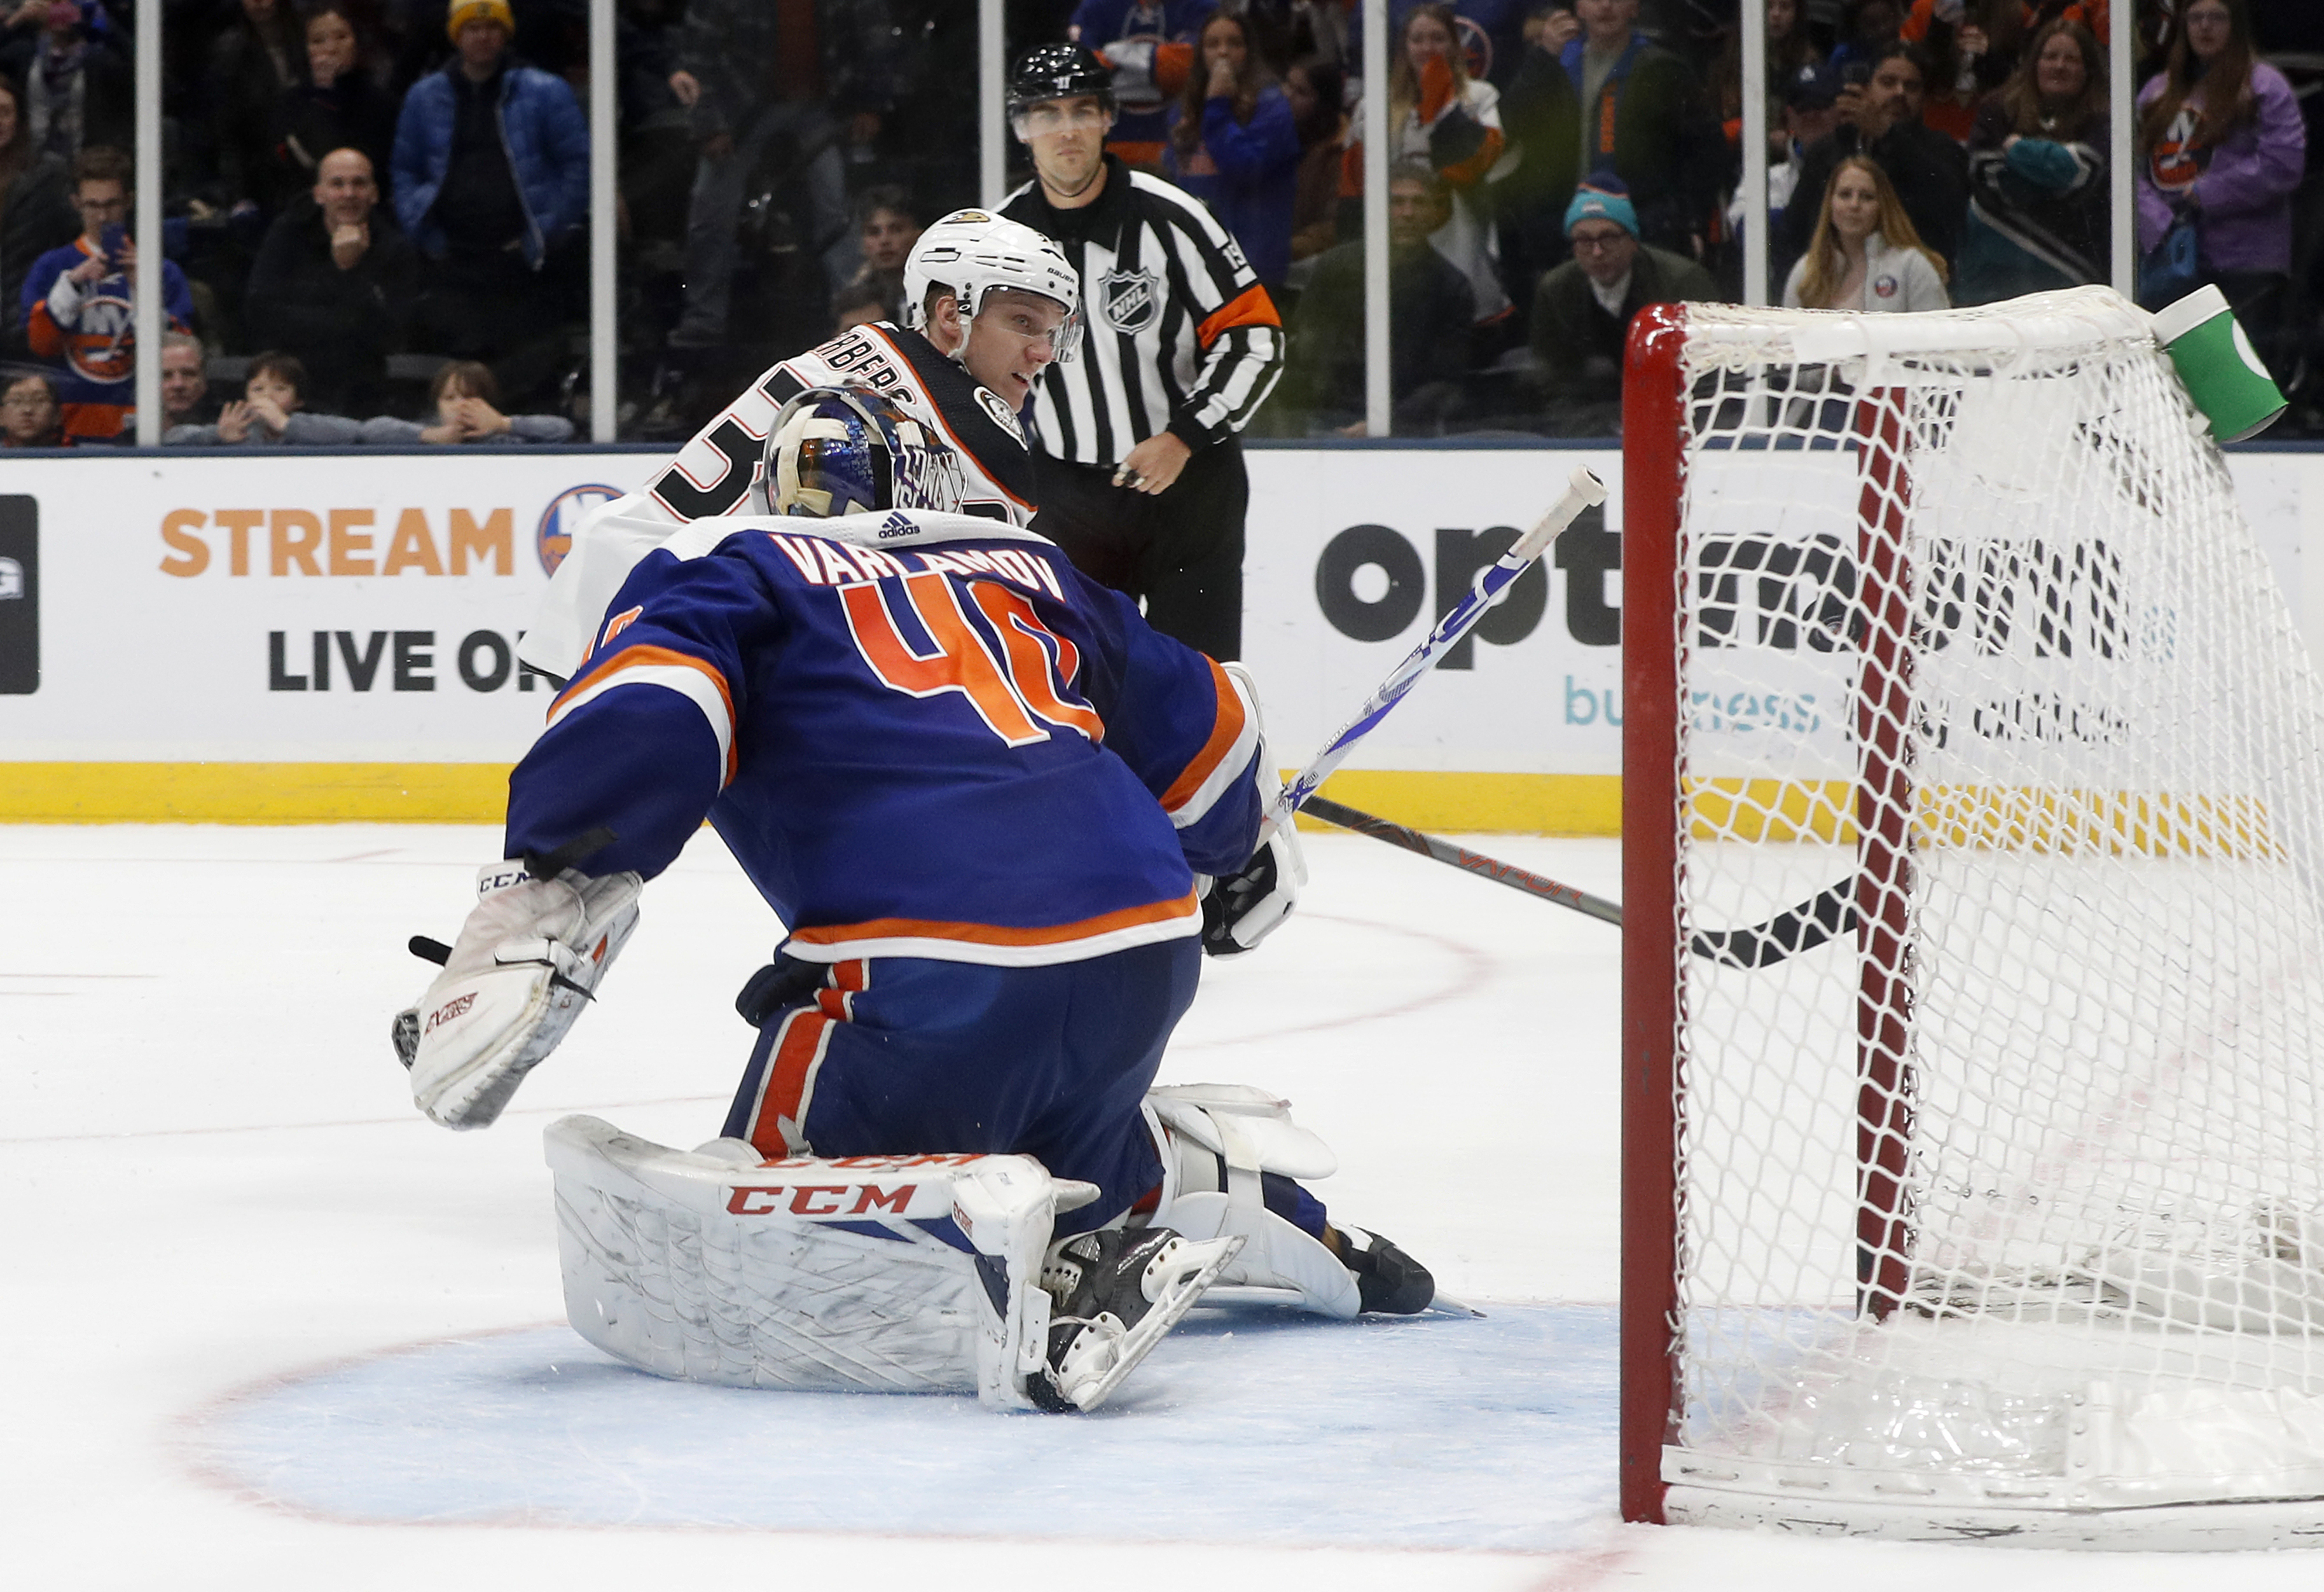 Silfverberg lifts Ducks past Islanders 6-5 in shootout